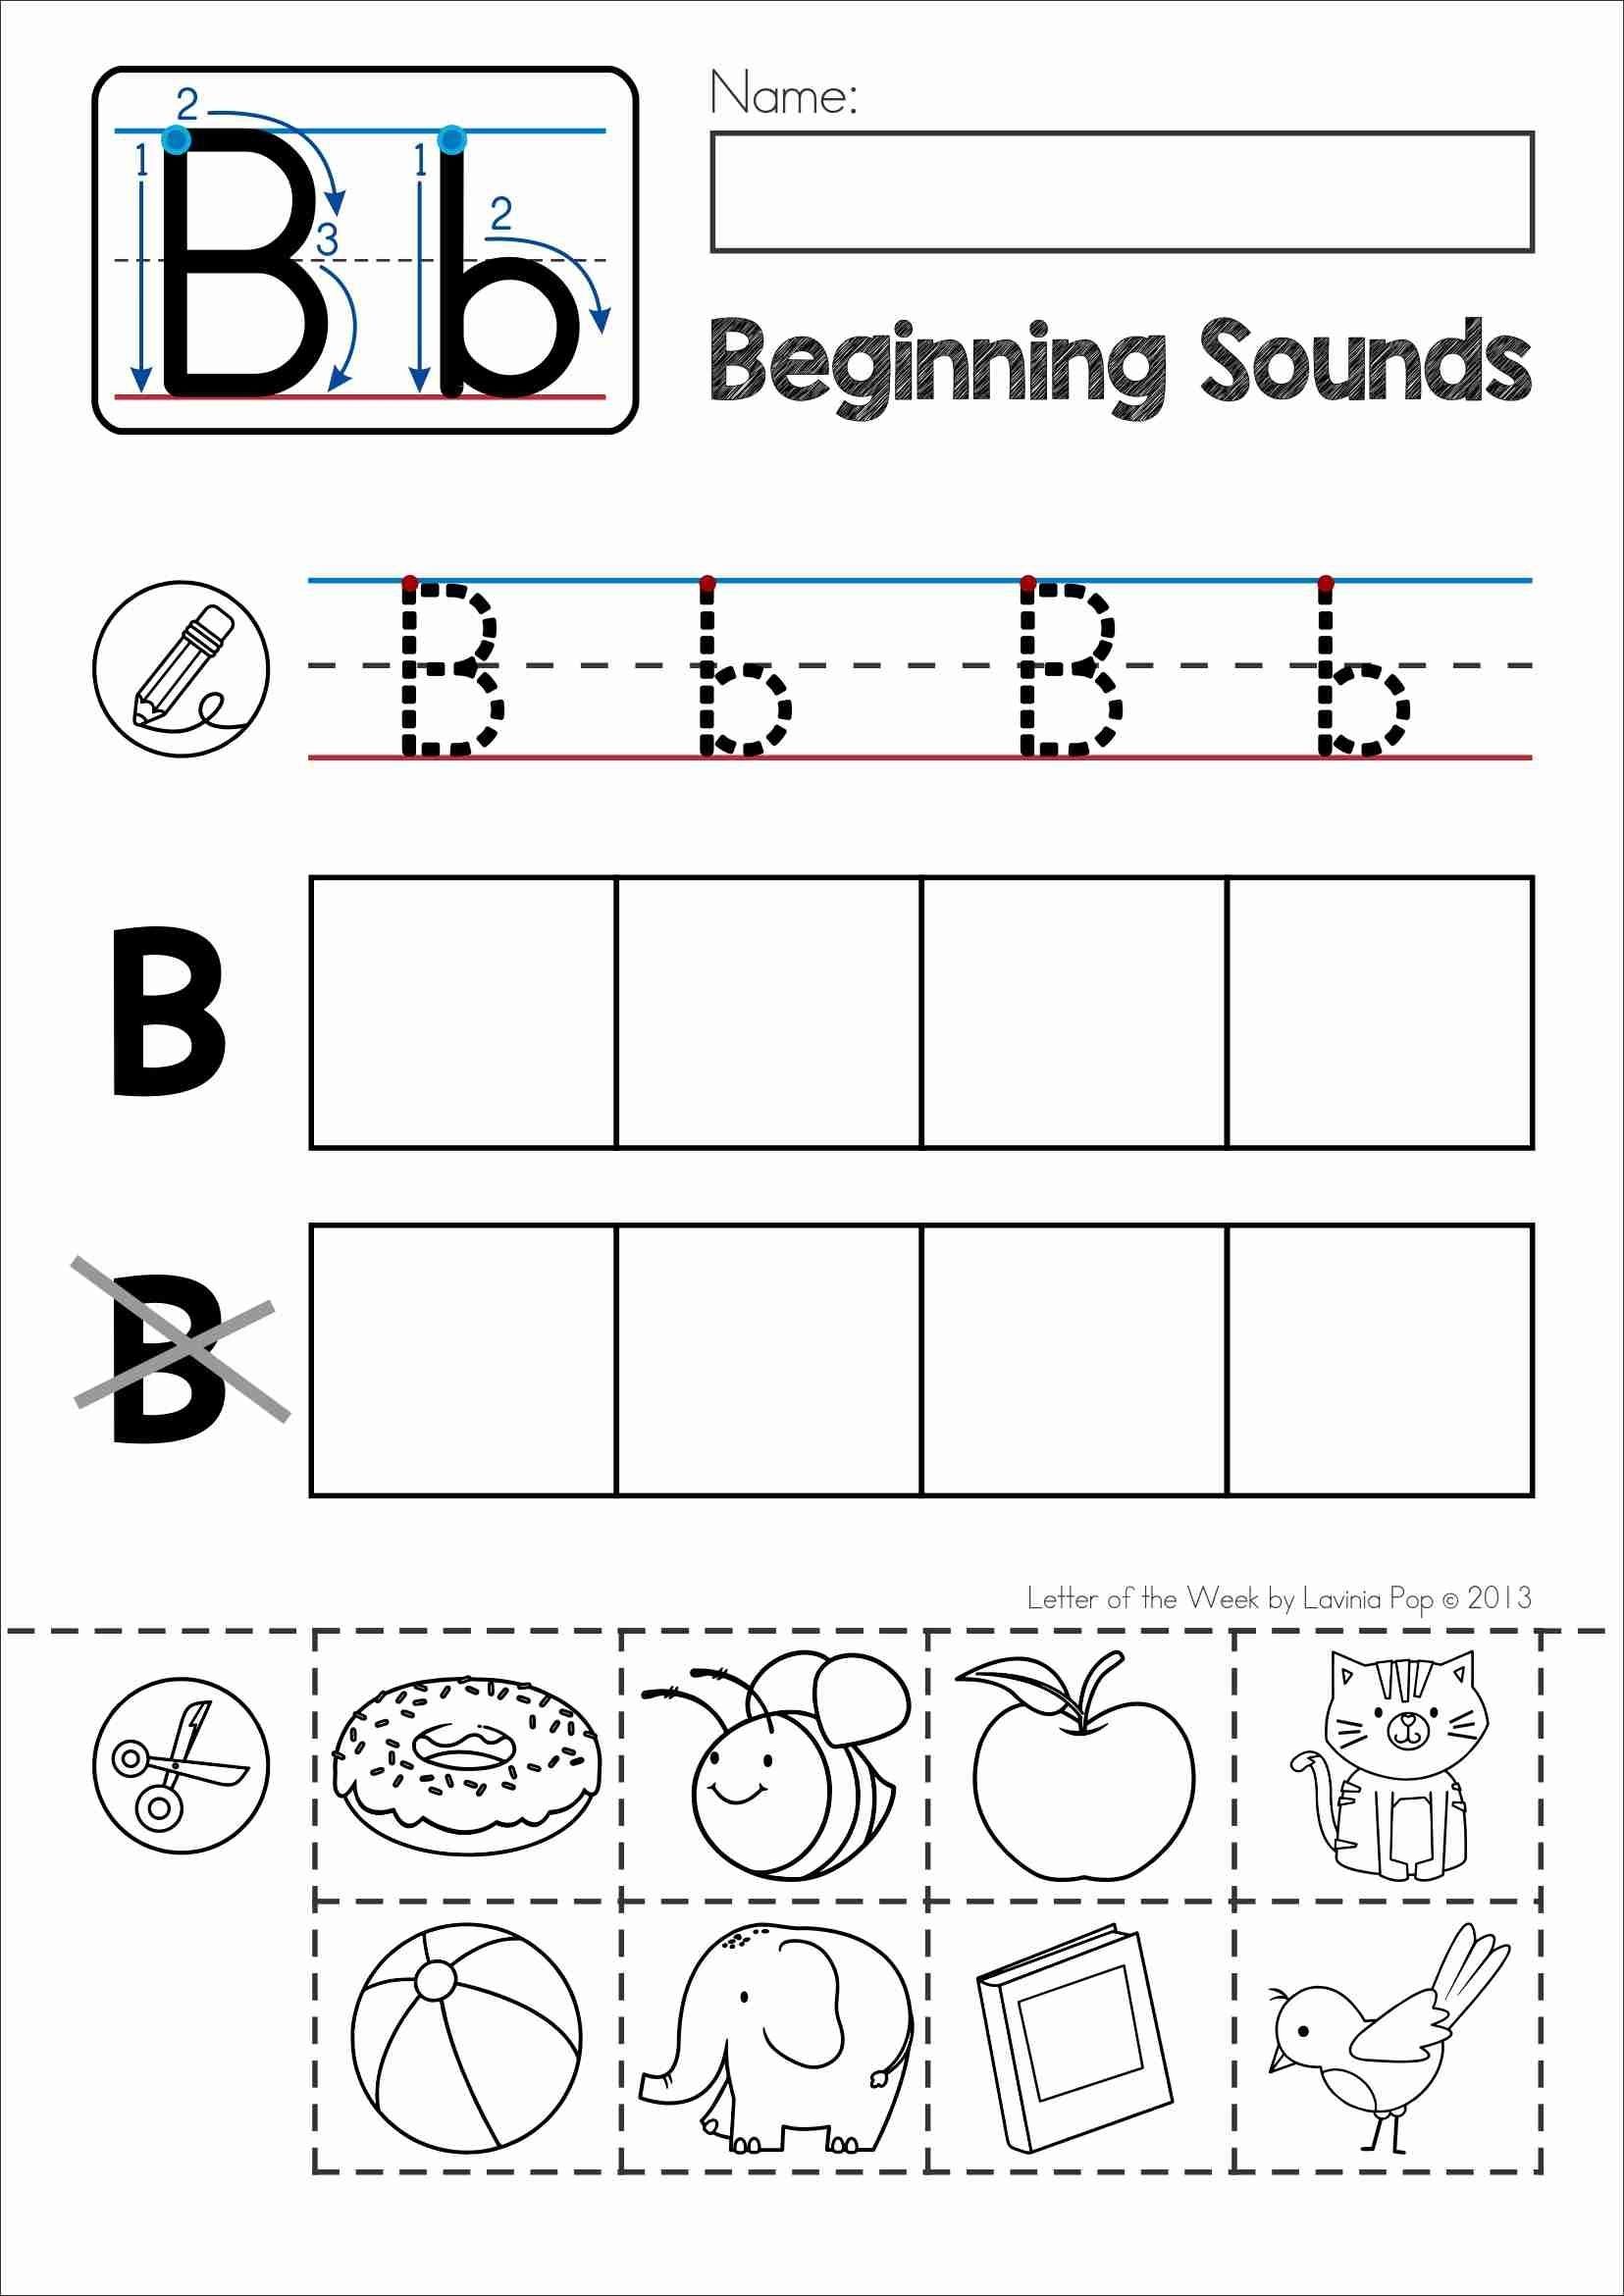 Free Phonics Letter Of The Week B Beginning Sounds Cut